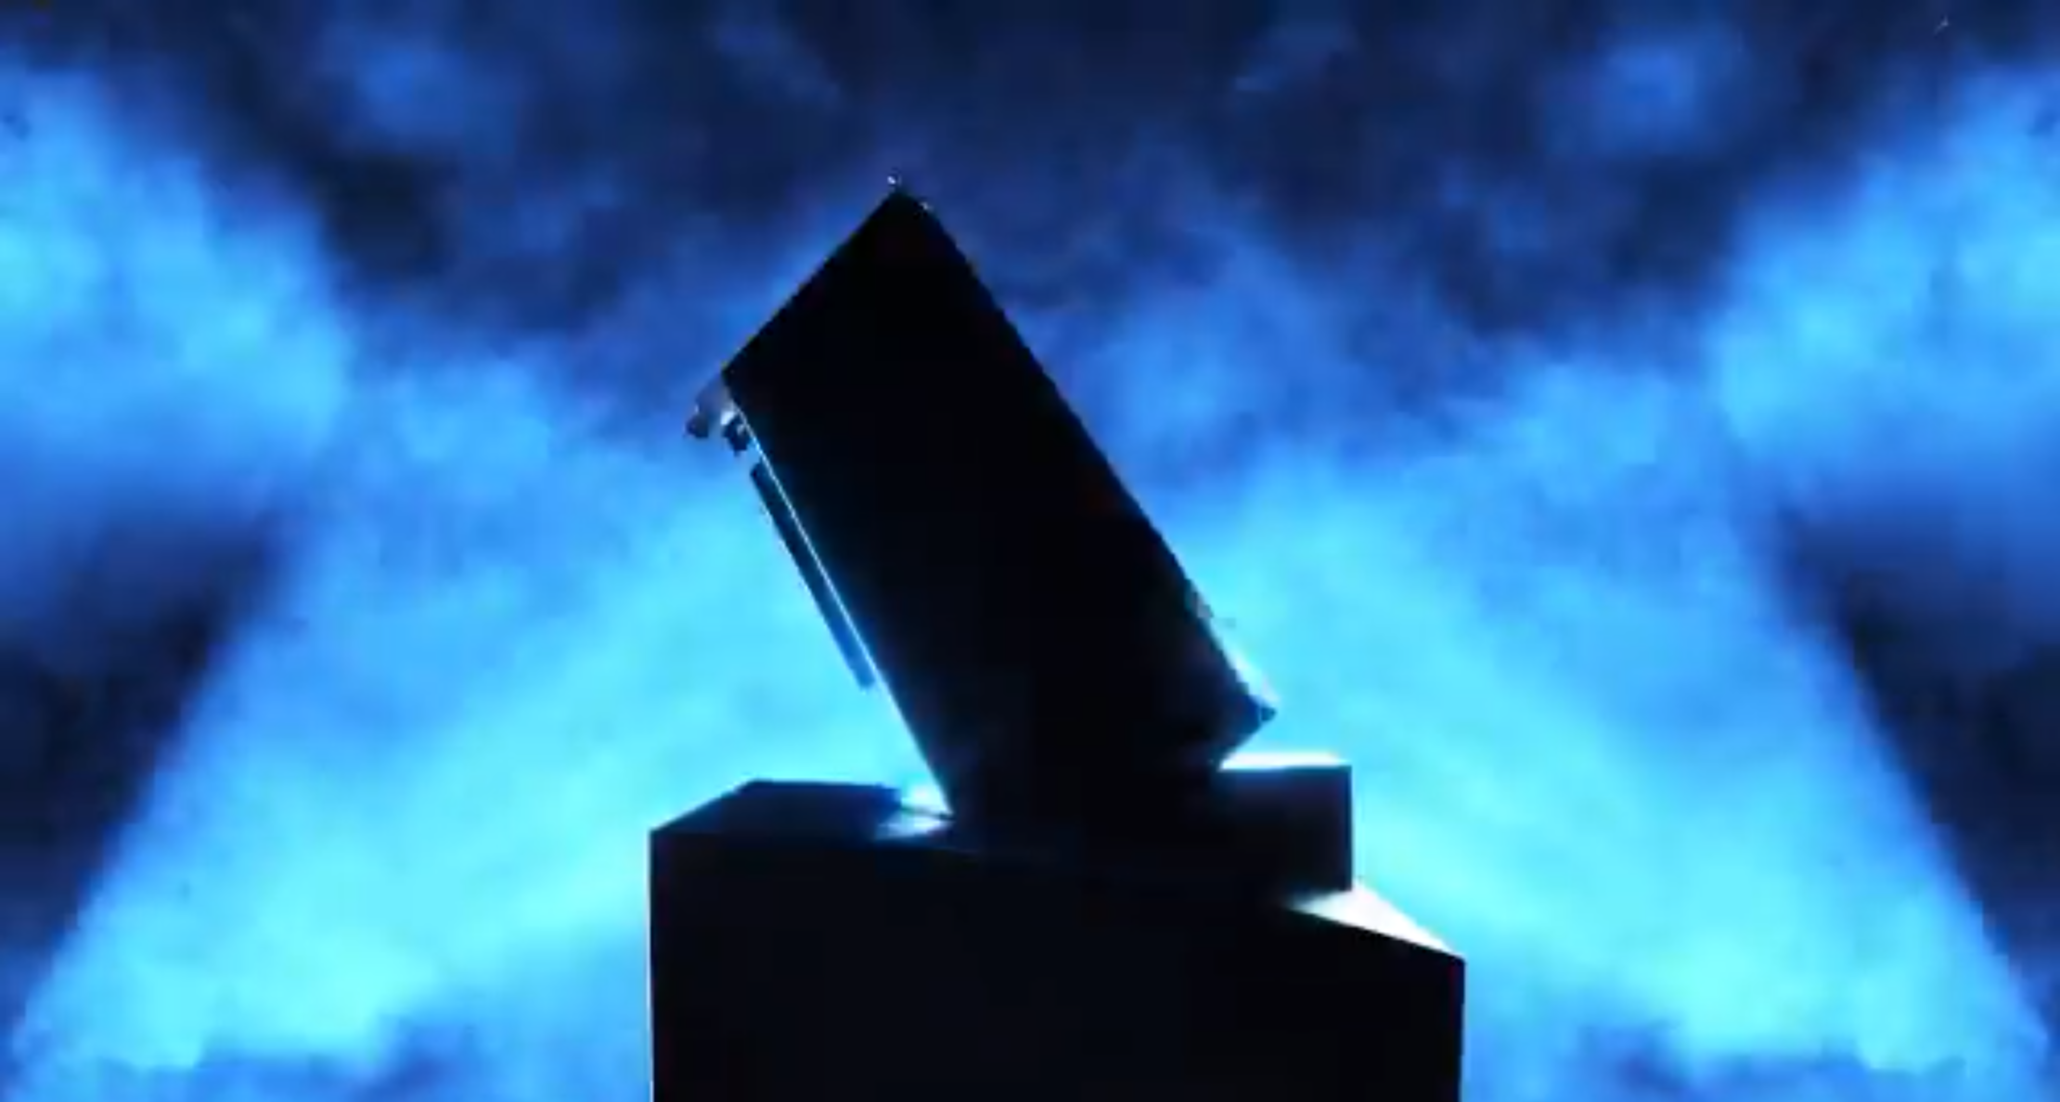 intel teases first gaming dedicated discrete graphics card solution